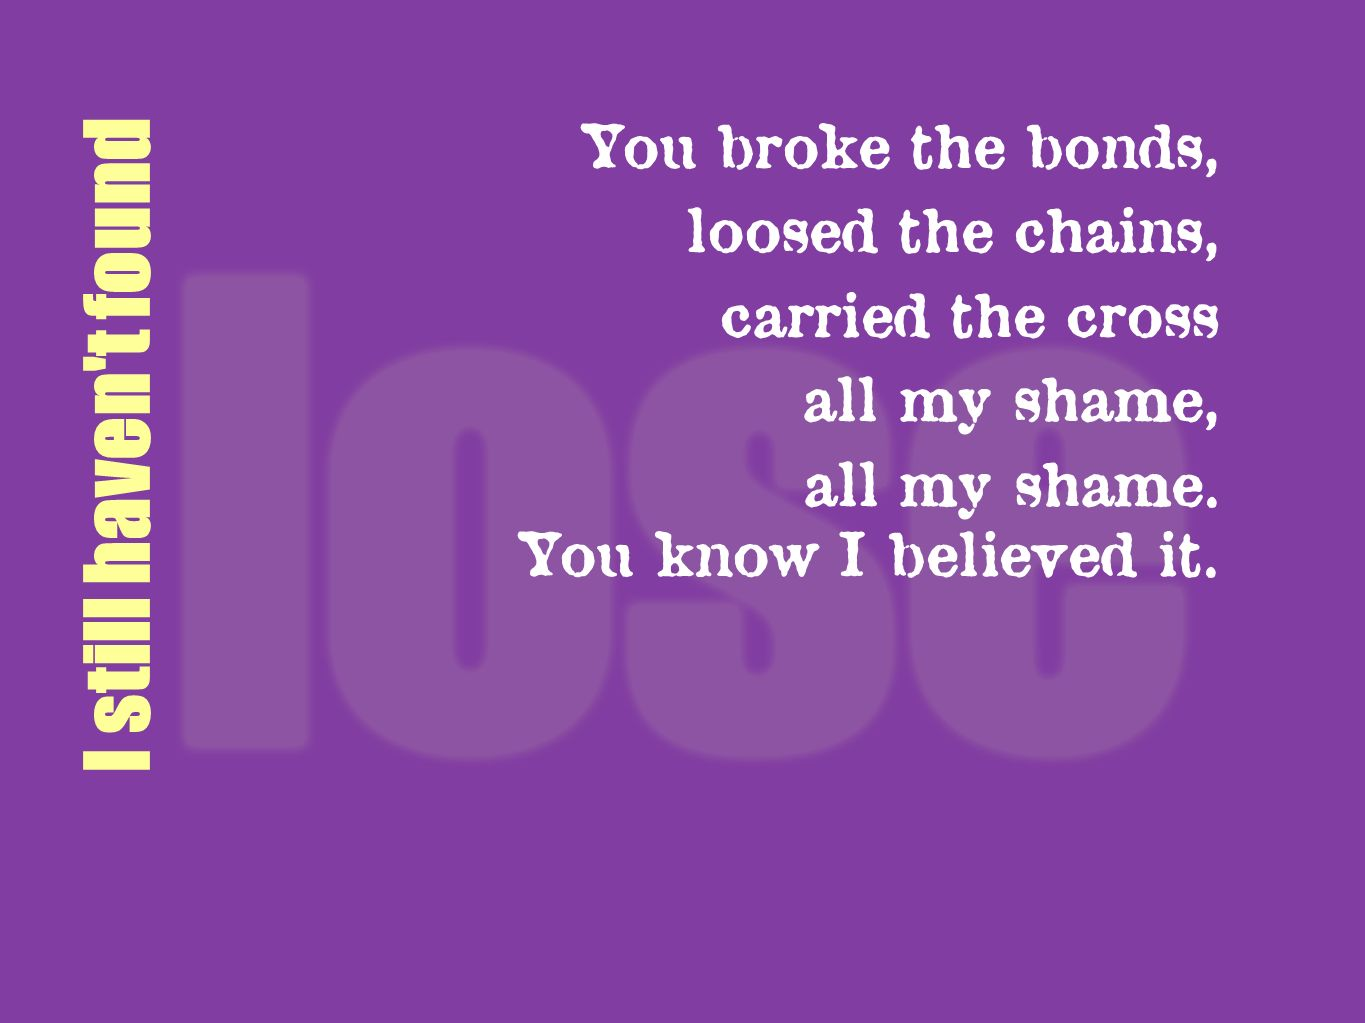 I still haven't found You broke the bonds, loosed the chains, carried the cross all my shame, all my shame. You know I believed it.